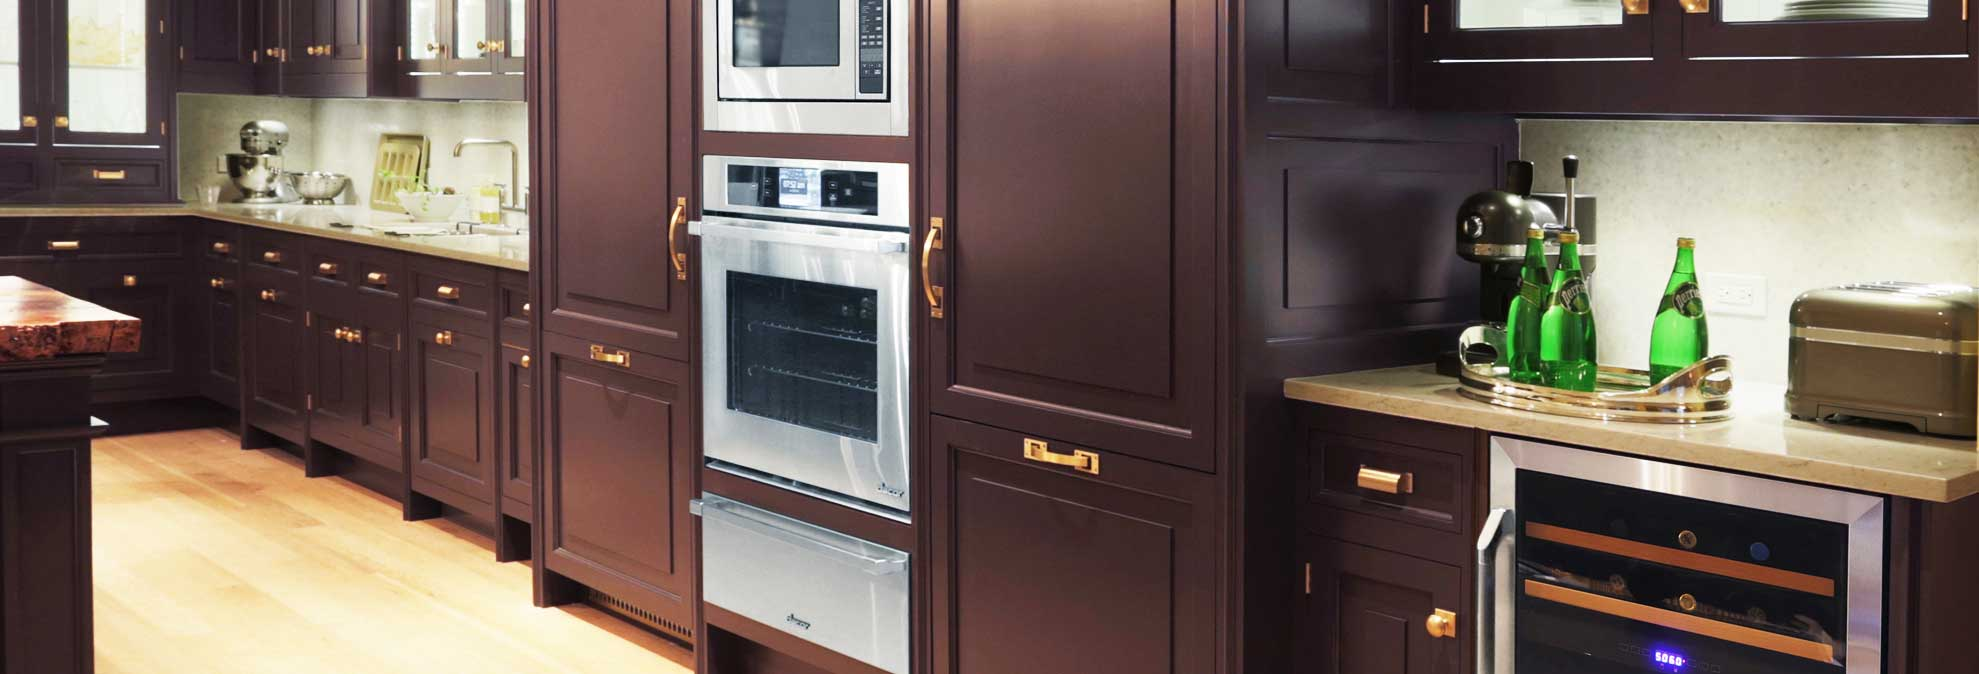 Best kitchen cabinet buying guide consumer reports for Best kitchen cabinets reviews